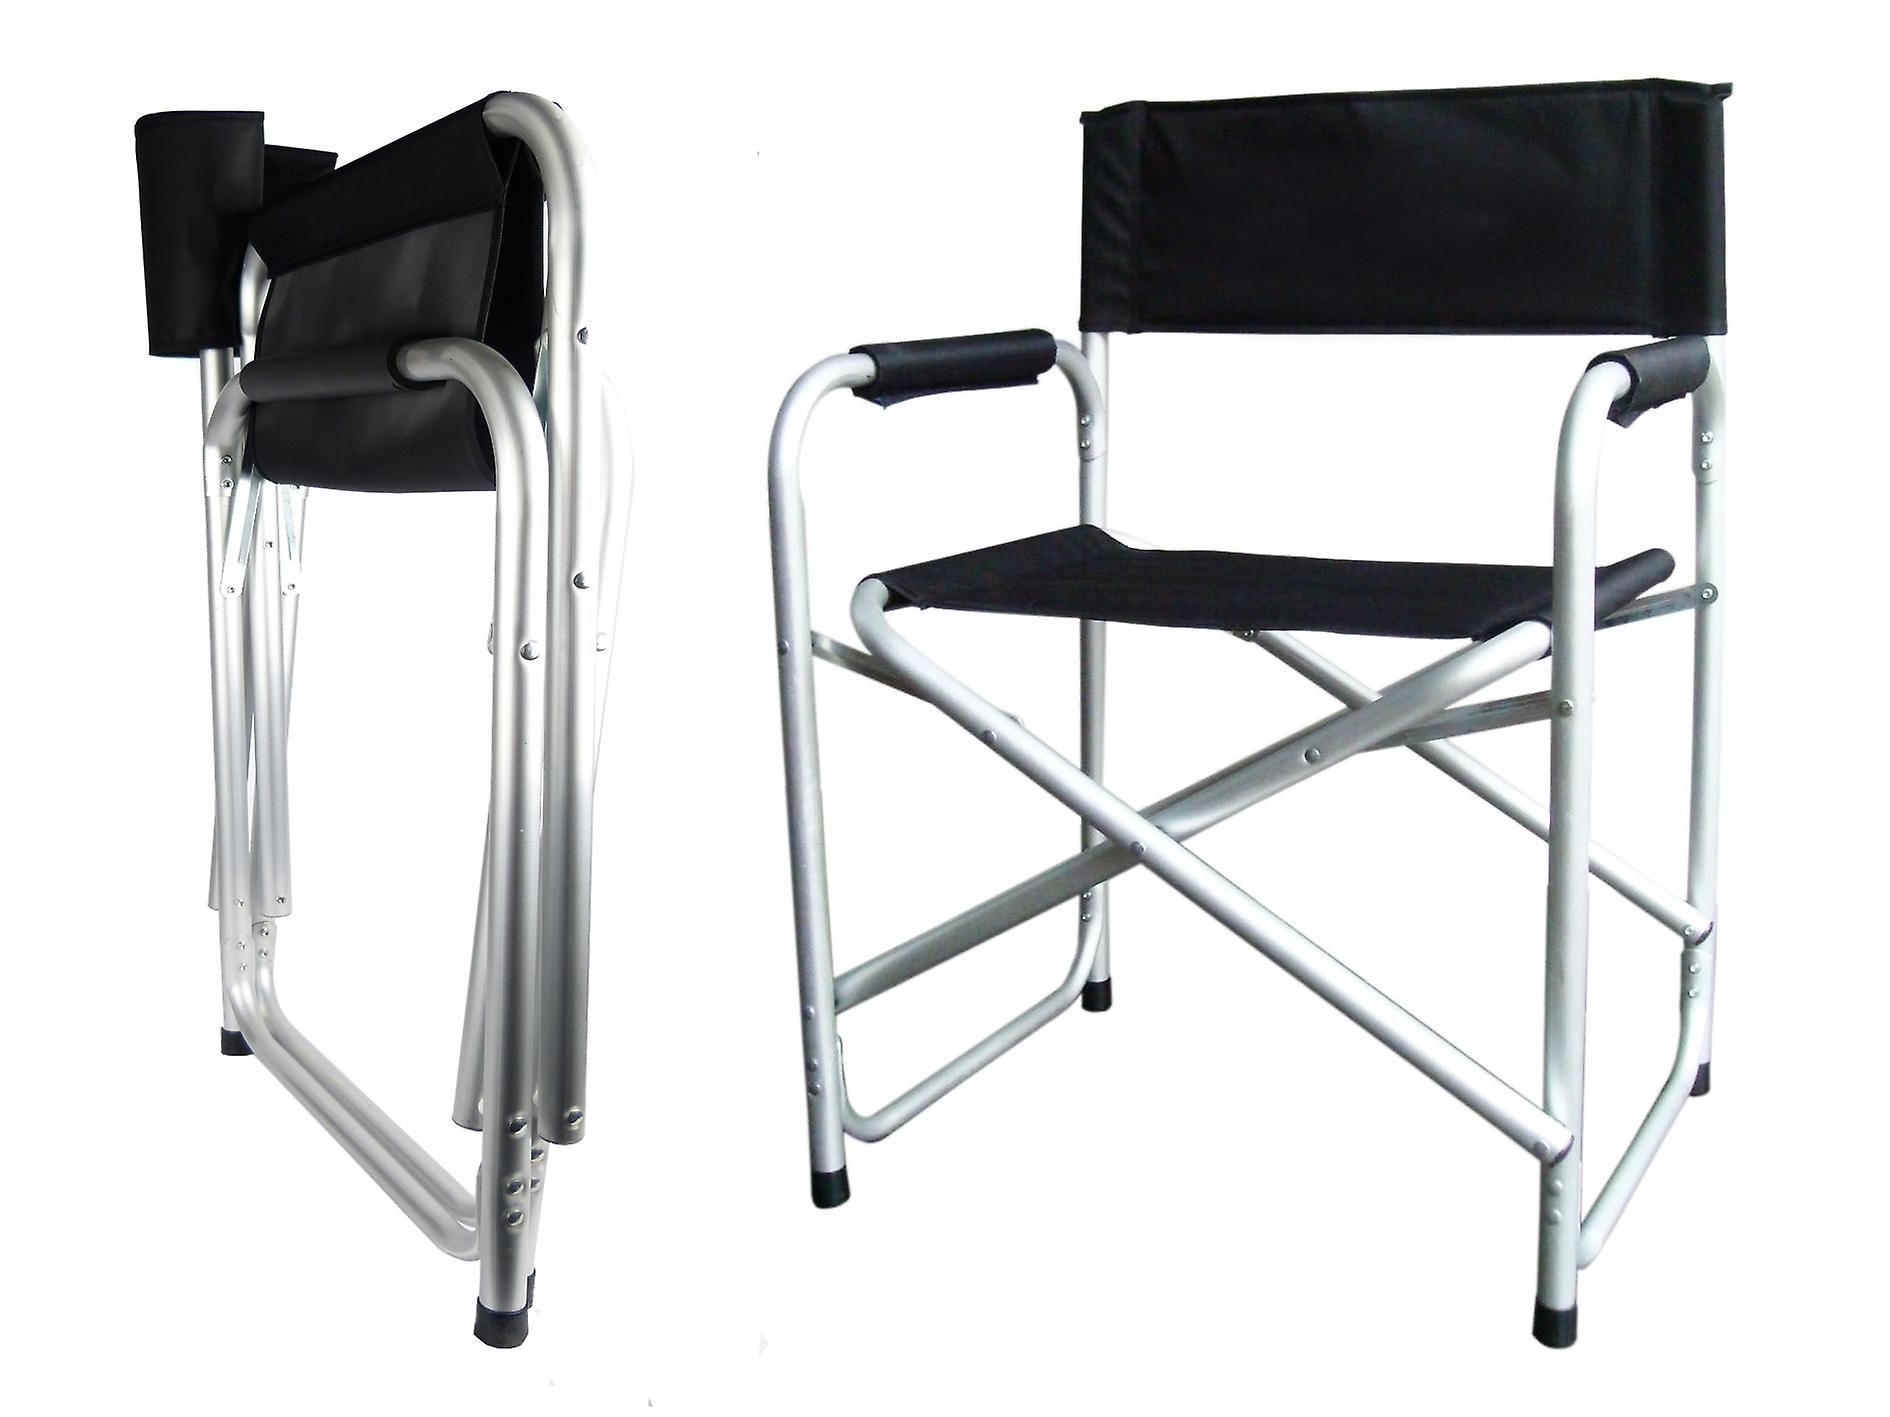 Hyfive® Black Aluminium Directors Folding Chair With Arm Rest Camping, Fishing,Garden Chair